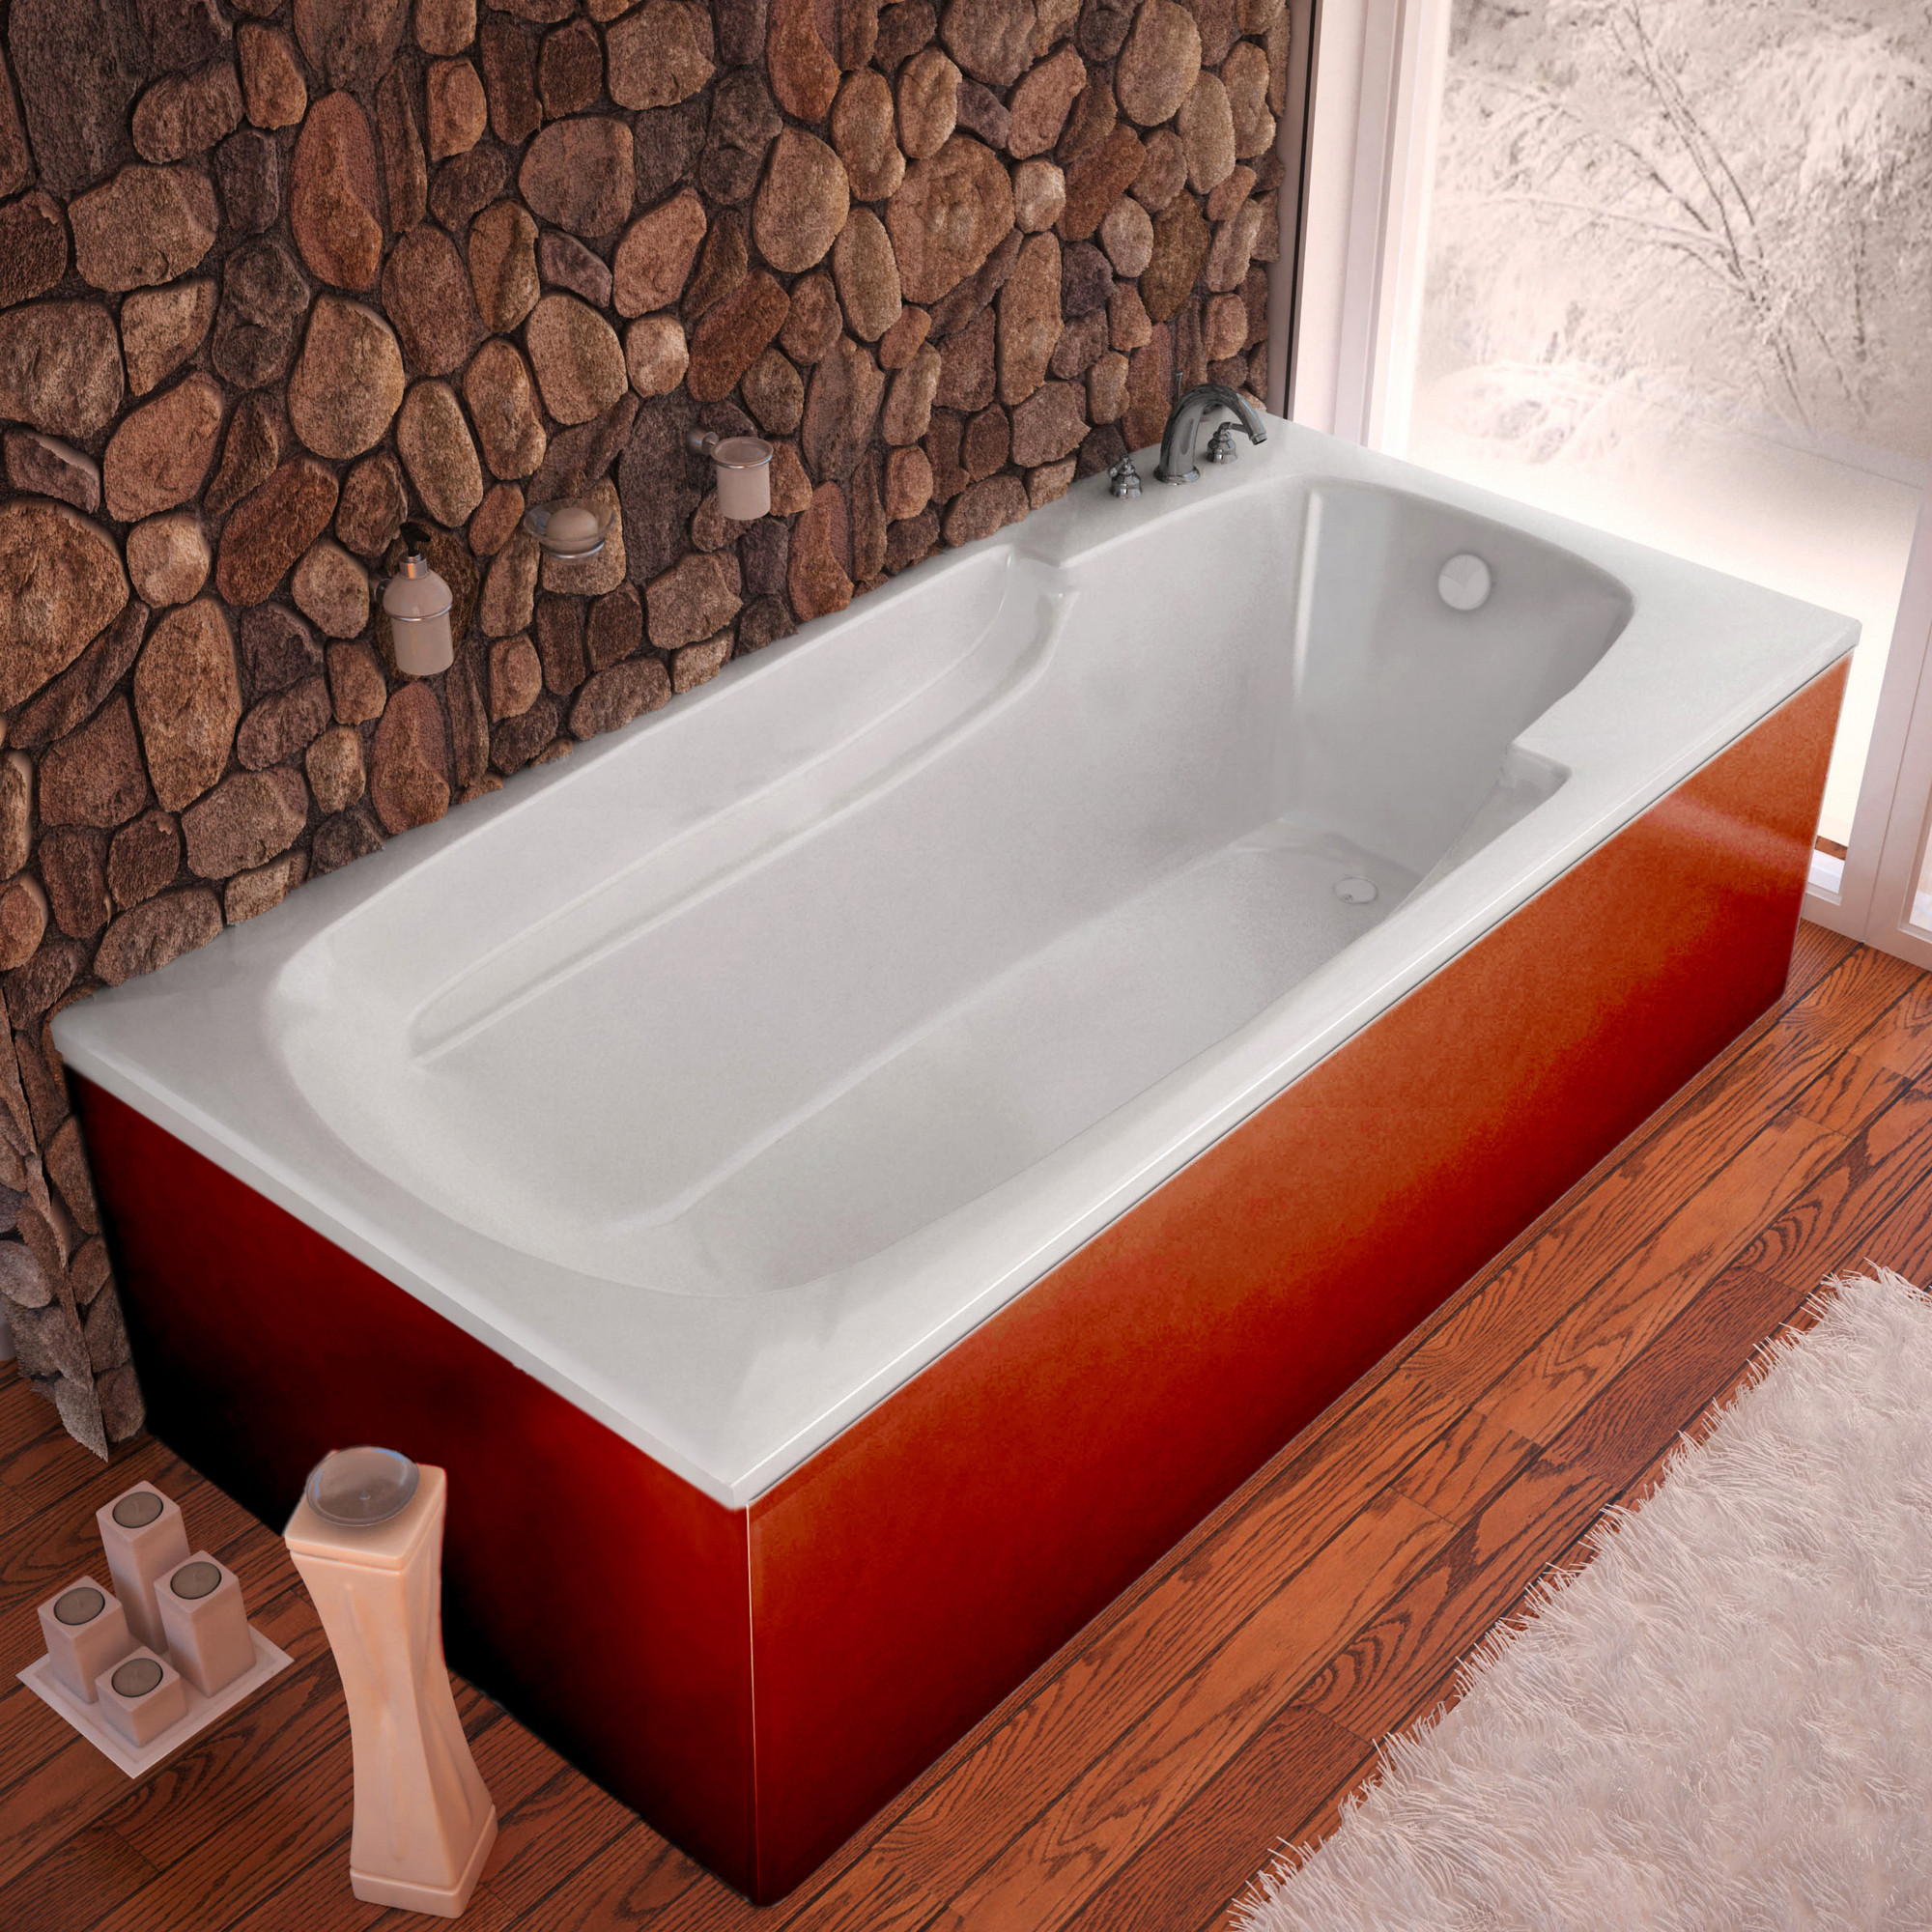 MediTub 3660E Atlantis Eros 36 x 60 Rectangular Drop In Soaking Bathtub